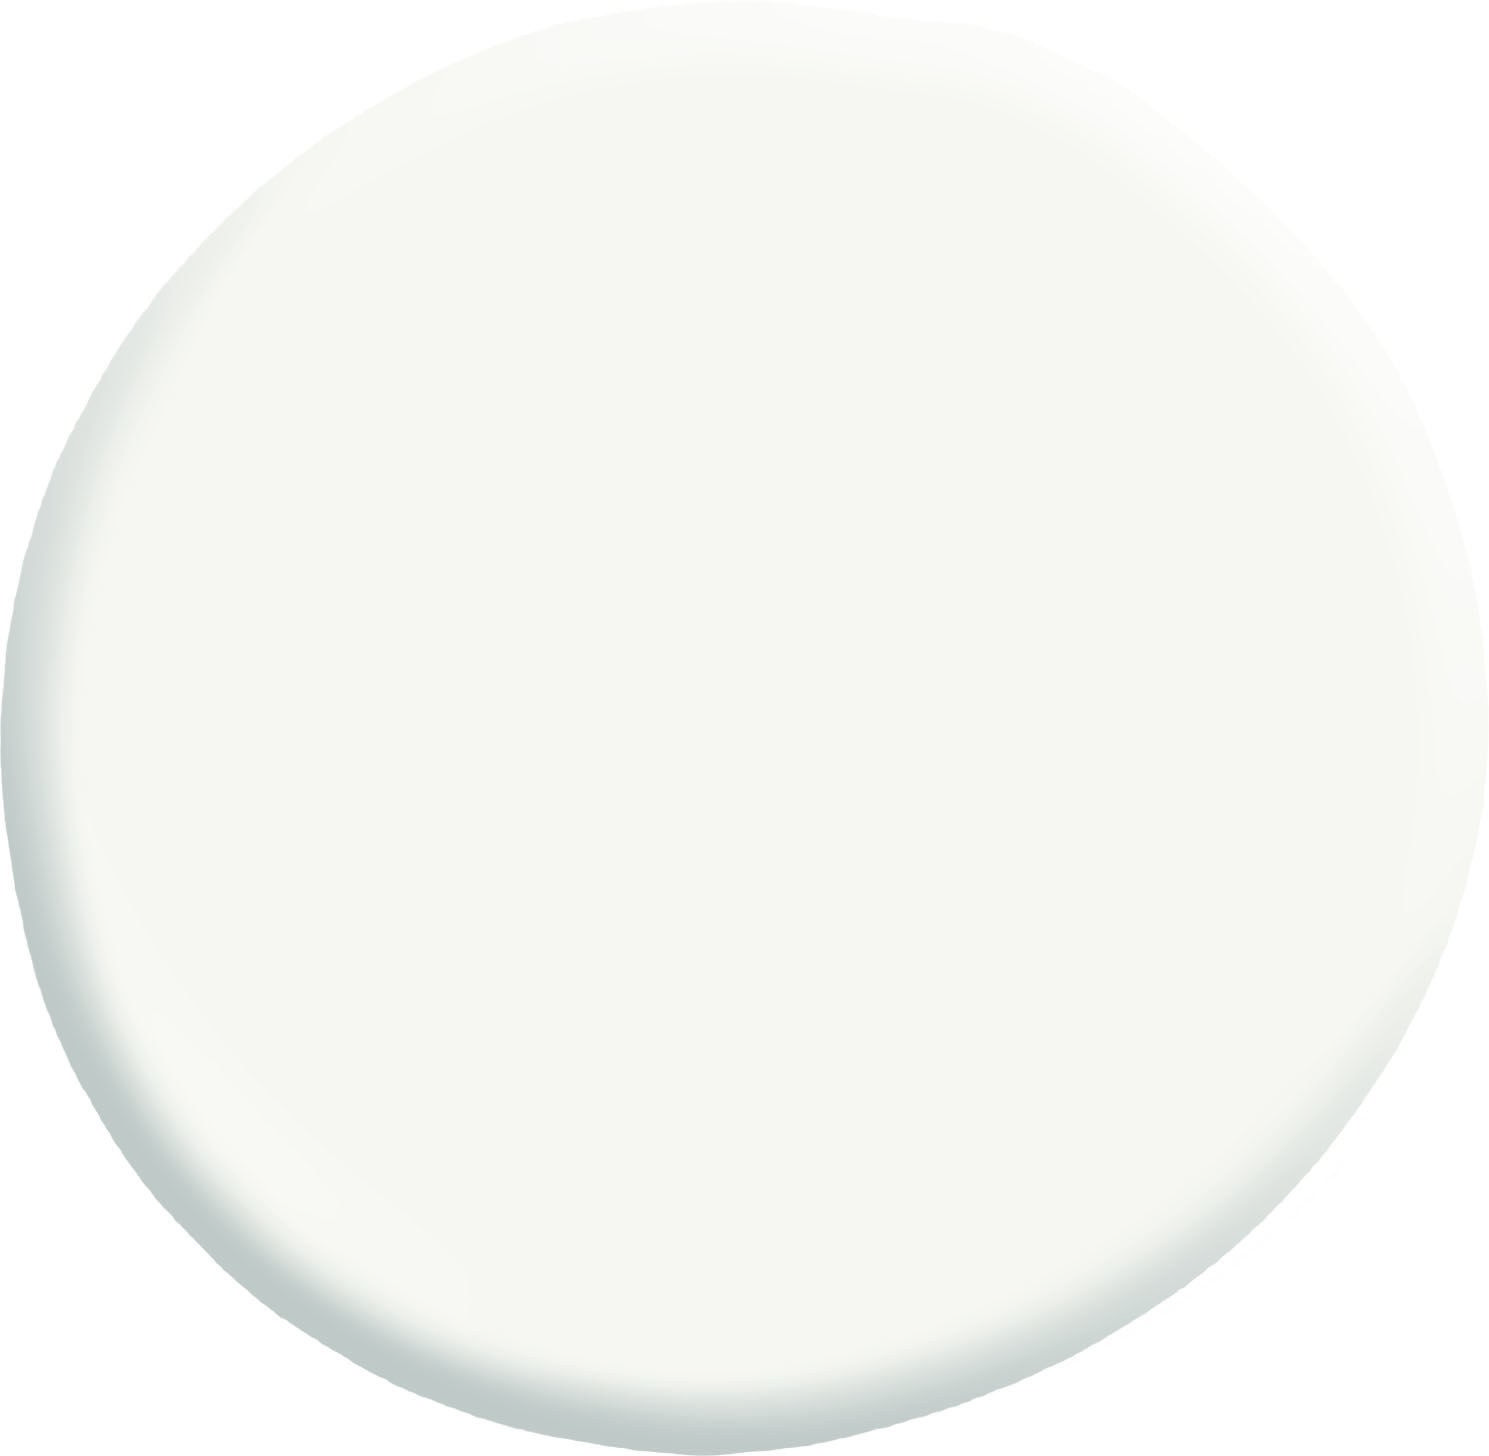 Most Popular Interior Neutral Paint Colors: The Most Popular White Paint Colors